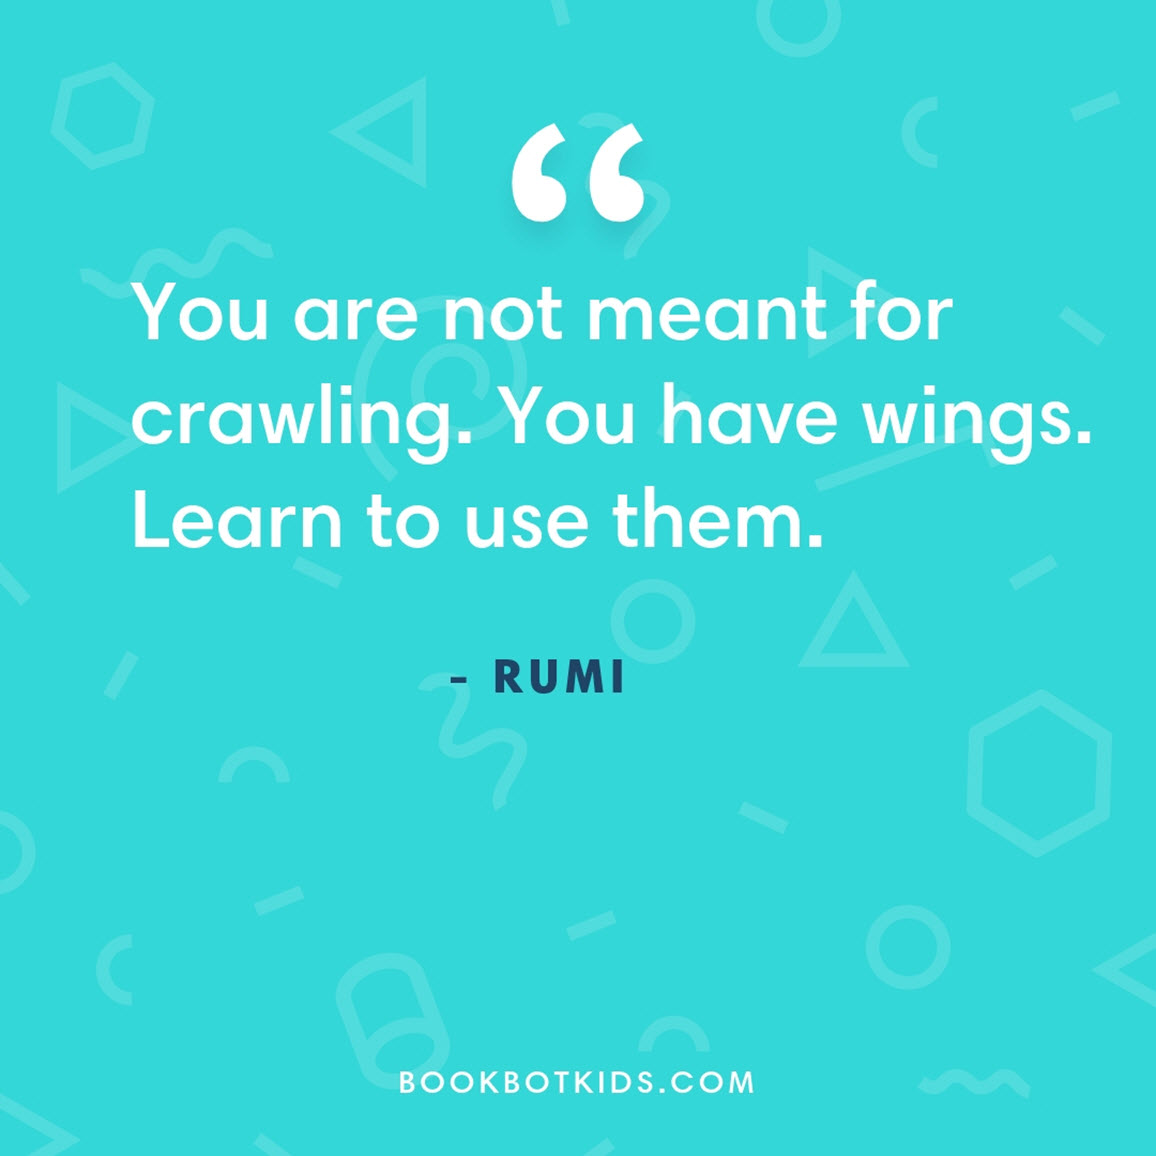 You are not meant for crawling. You have wings. Learn to use them. – Rumi